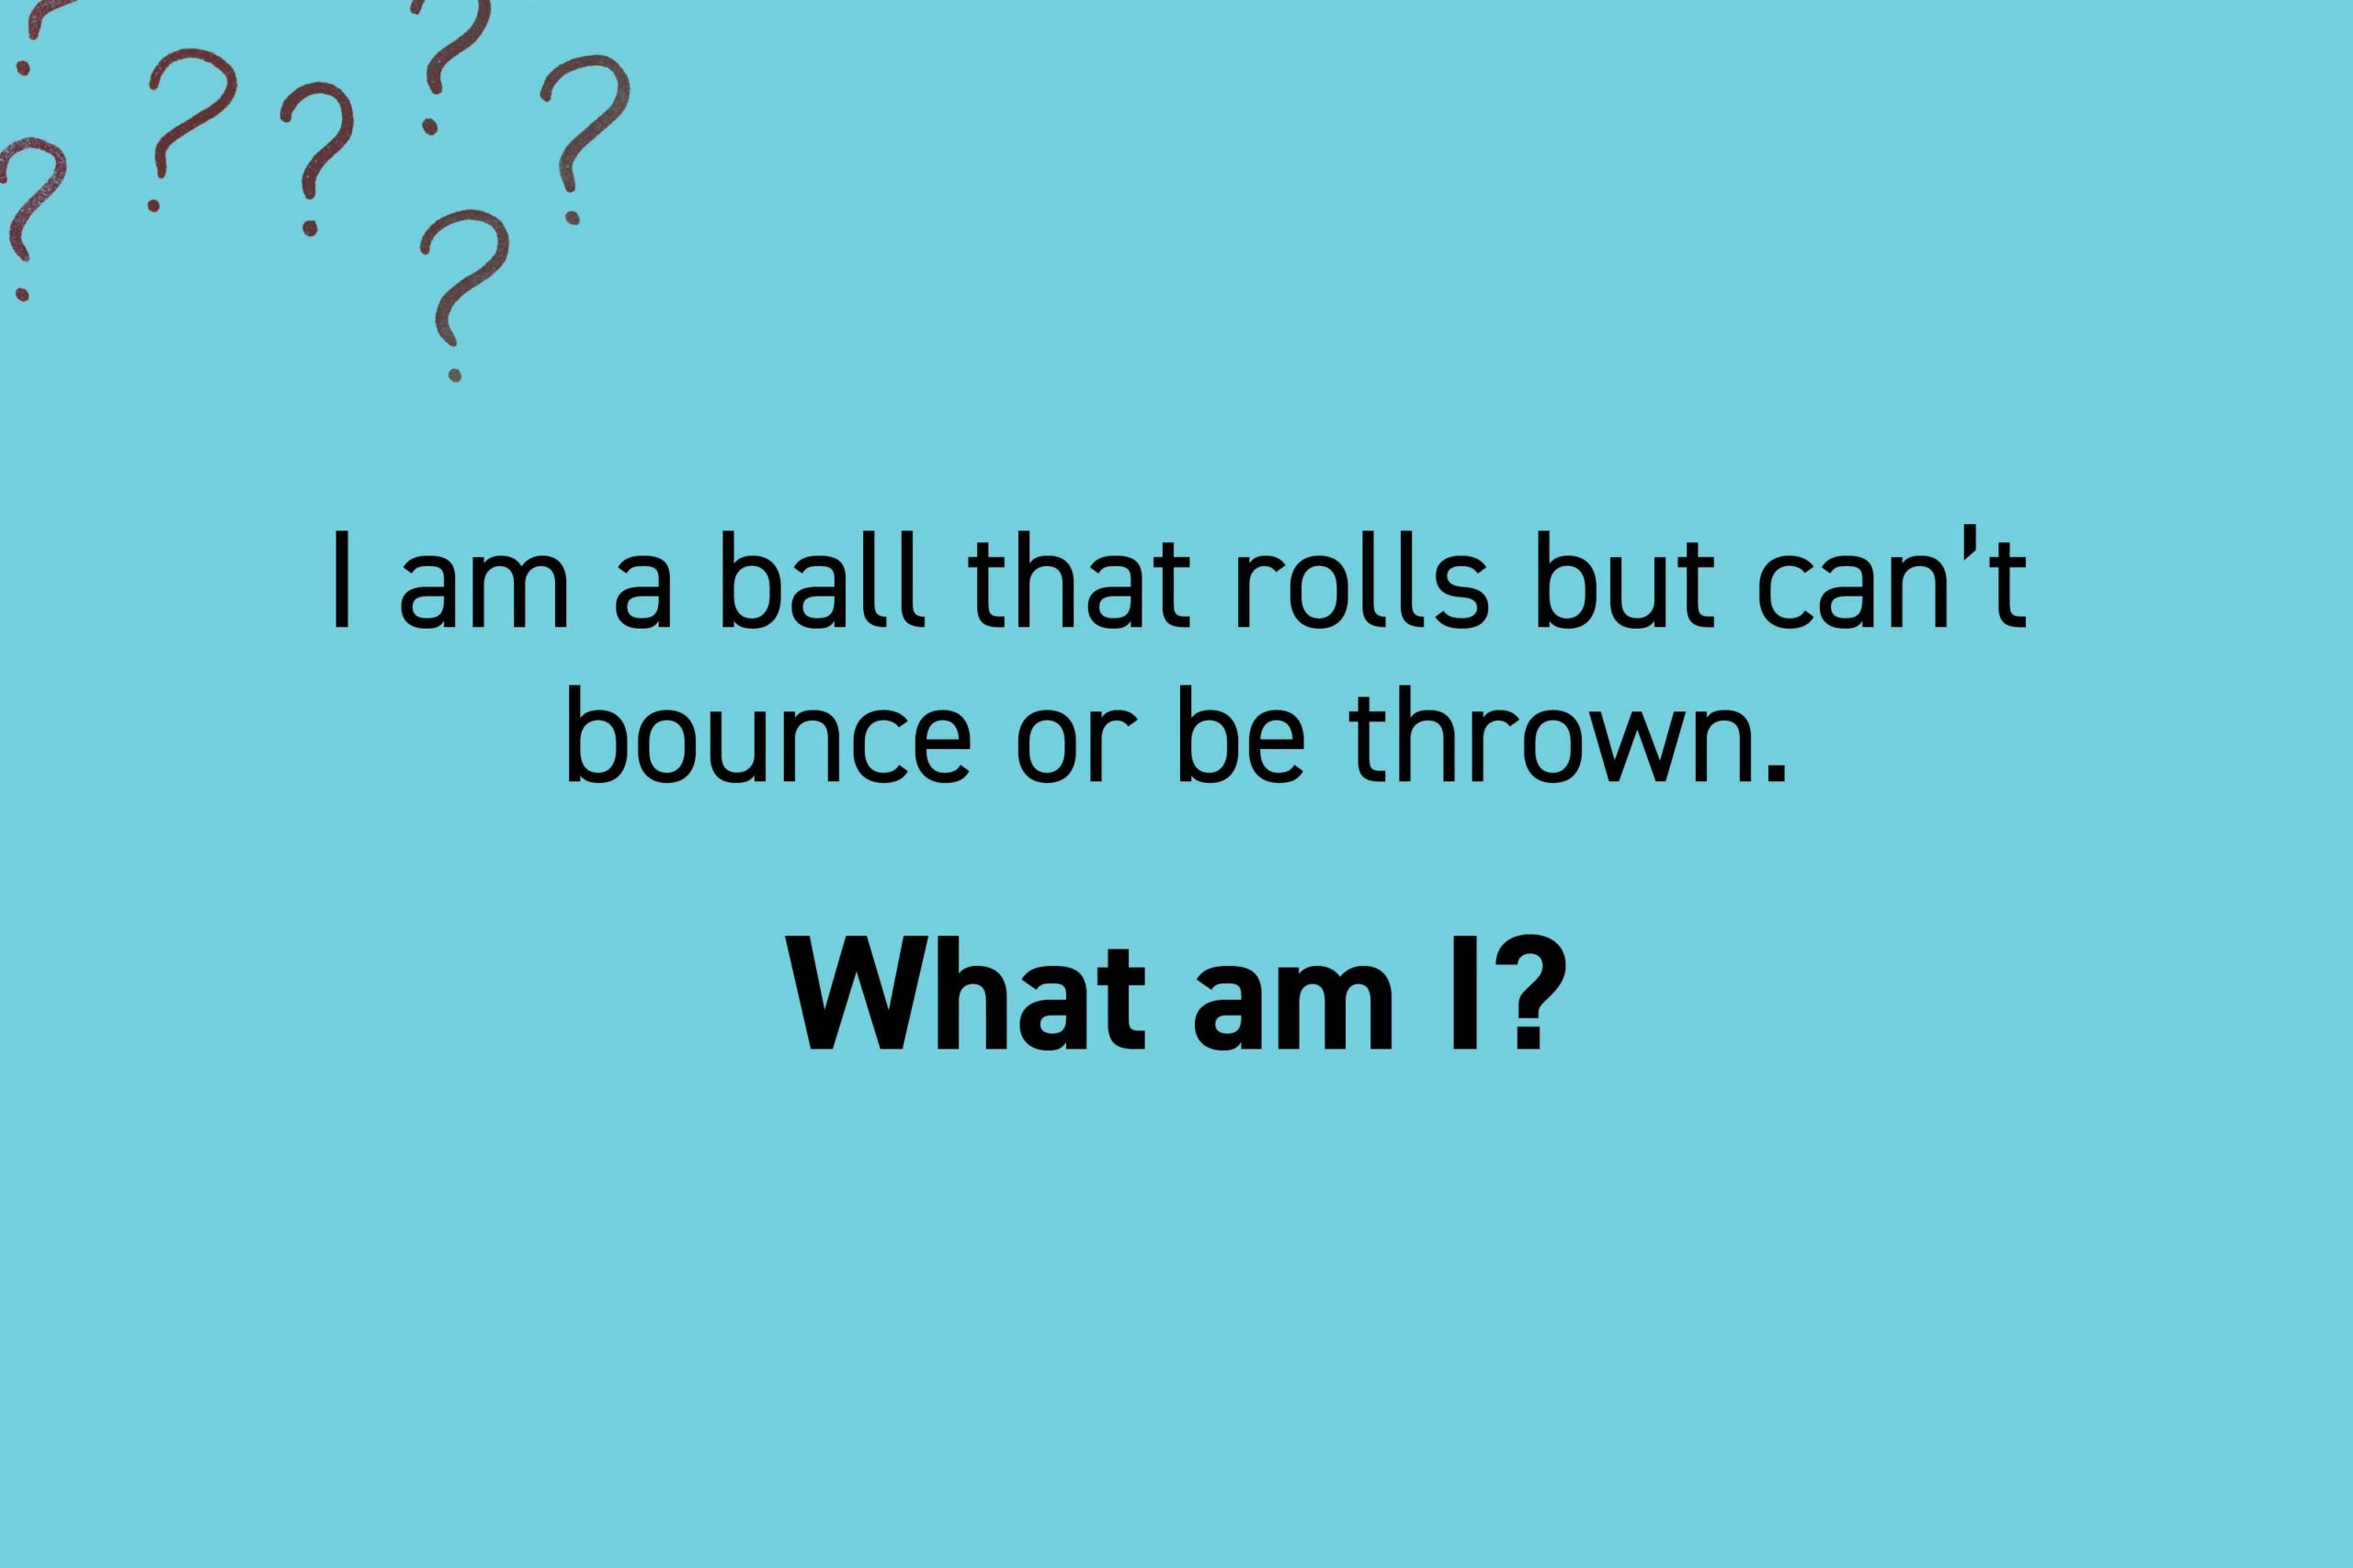 I am a ball that rolls but can't bounce or be thrown.